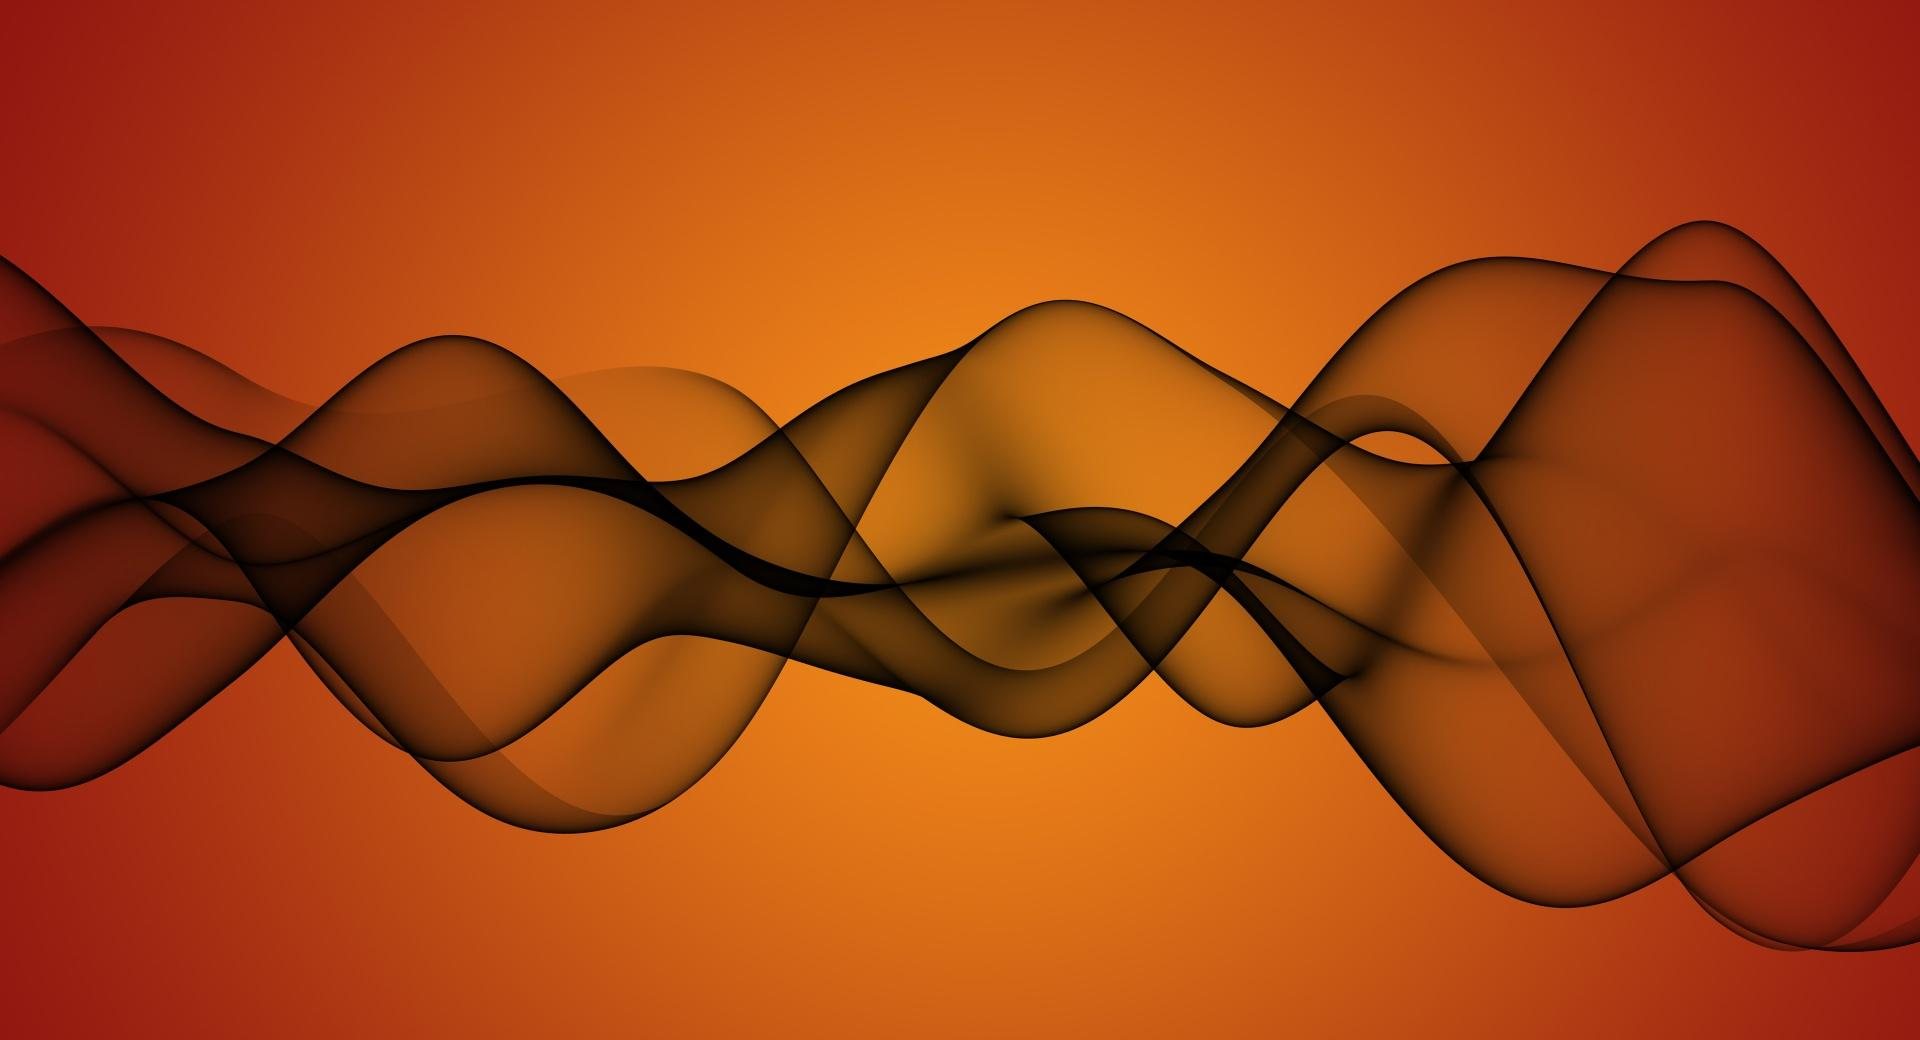 Transparent Waves On Orange Background wallpapers HD quality